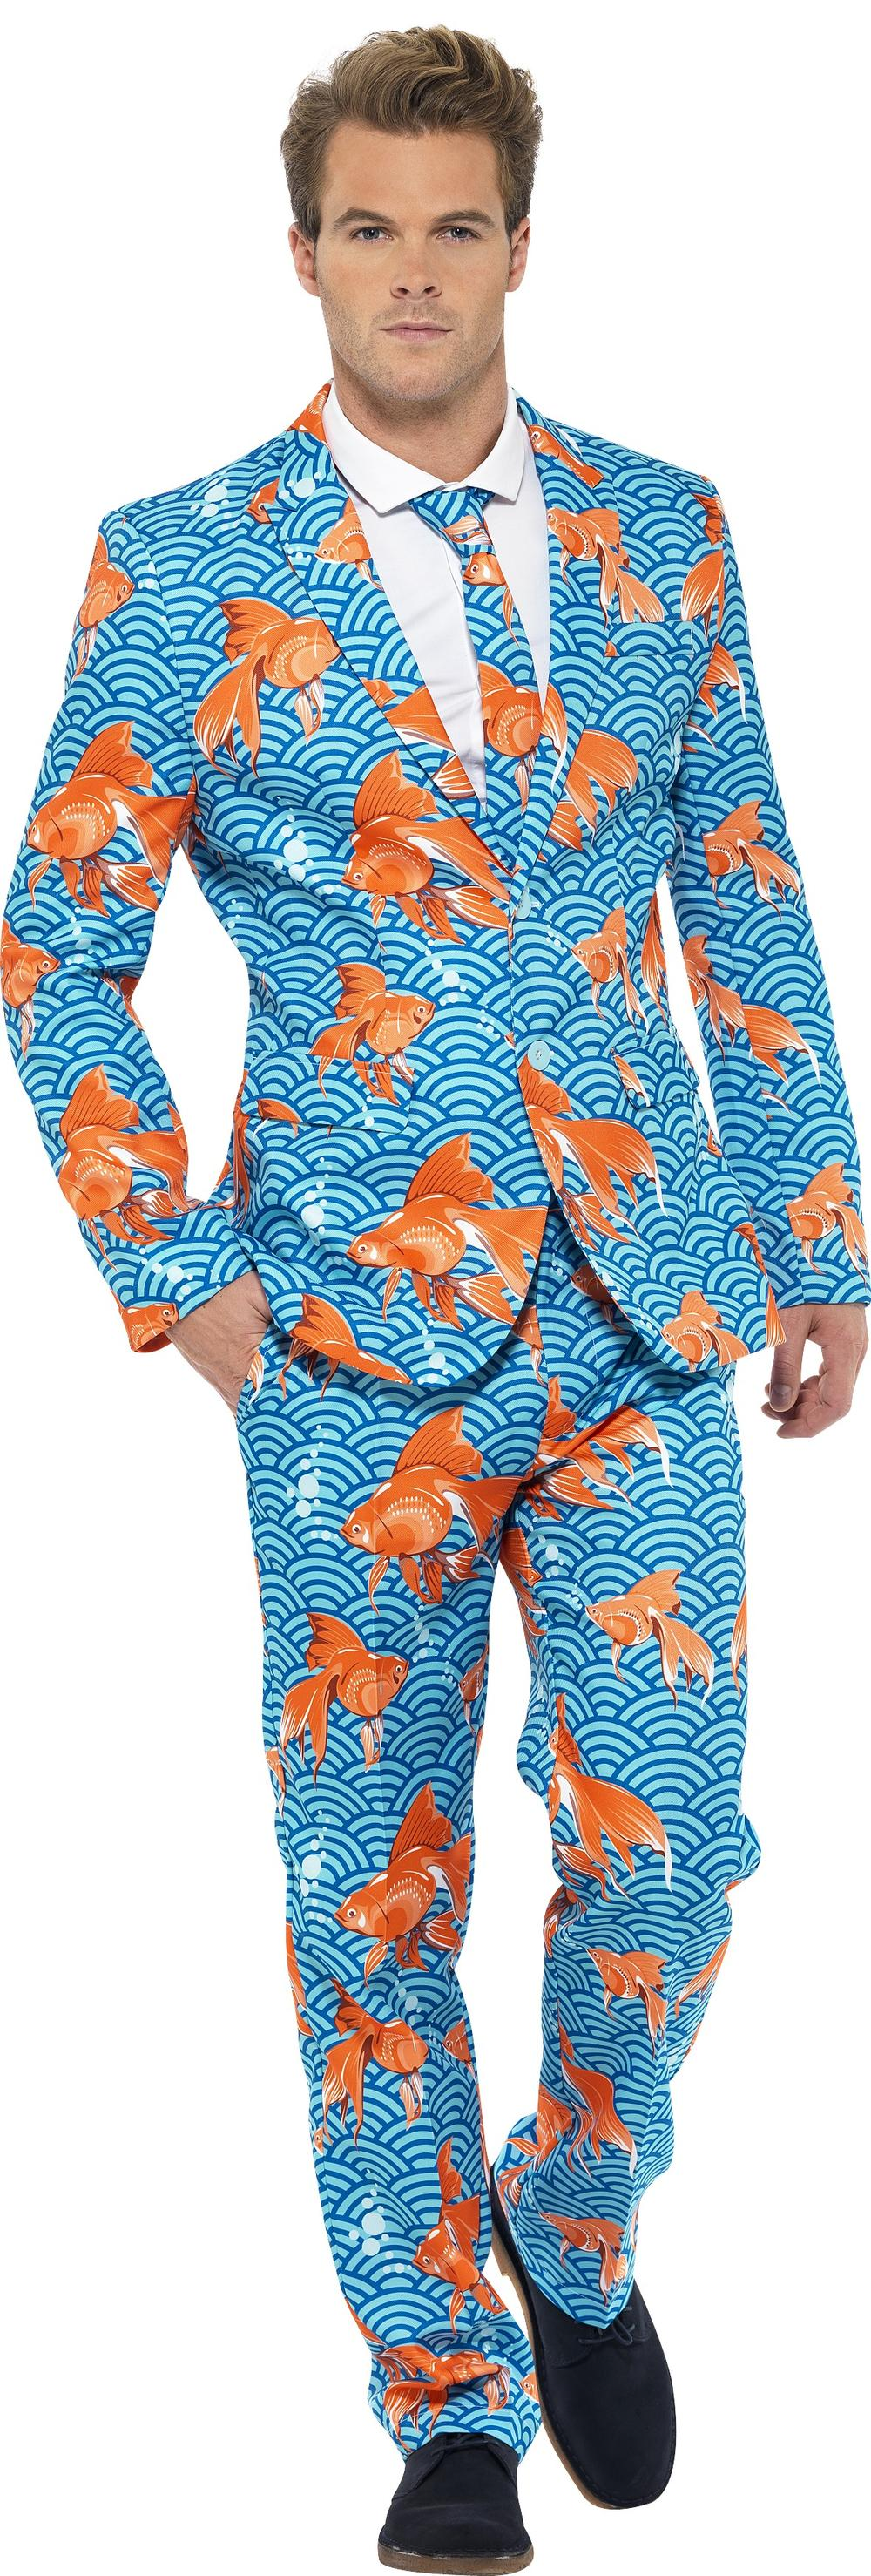 Deluxe Goldfish Stand Out Suit Mens Fancy Dress Novelty Adults Costume Outfit